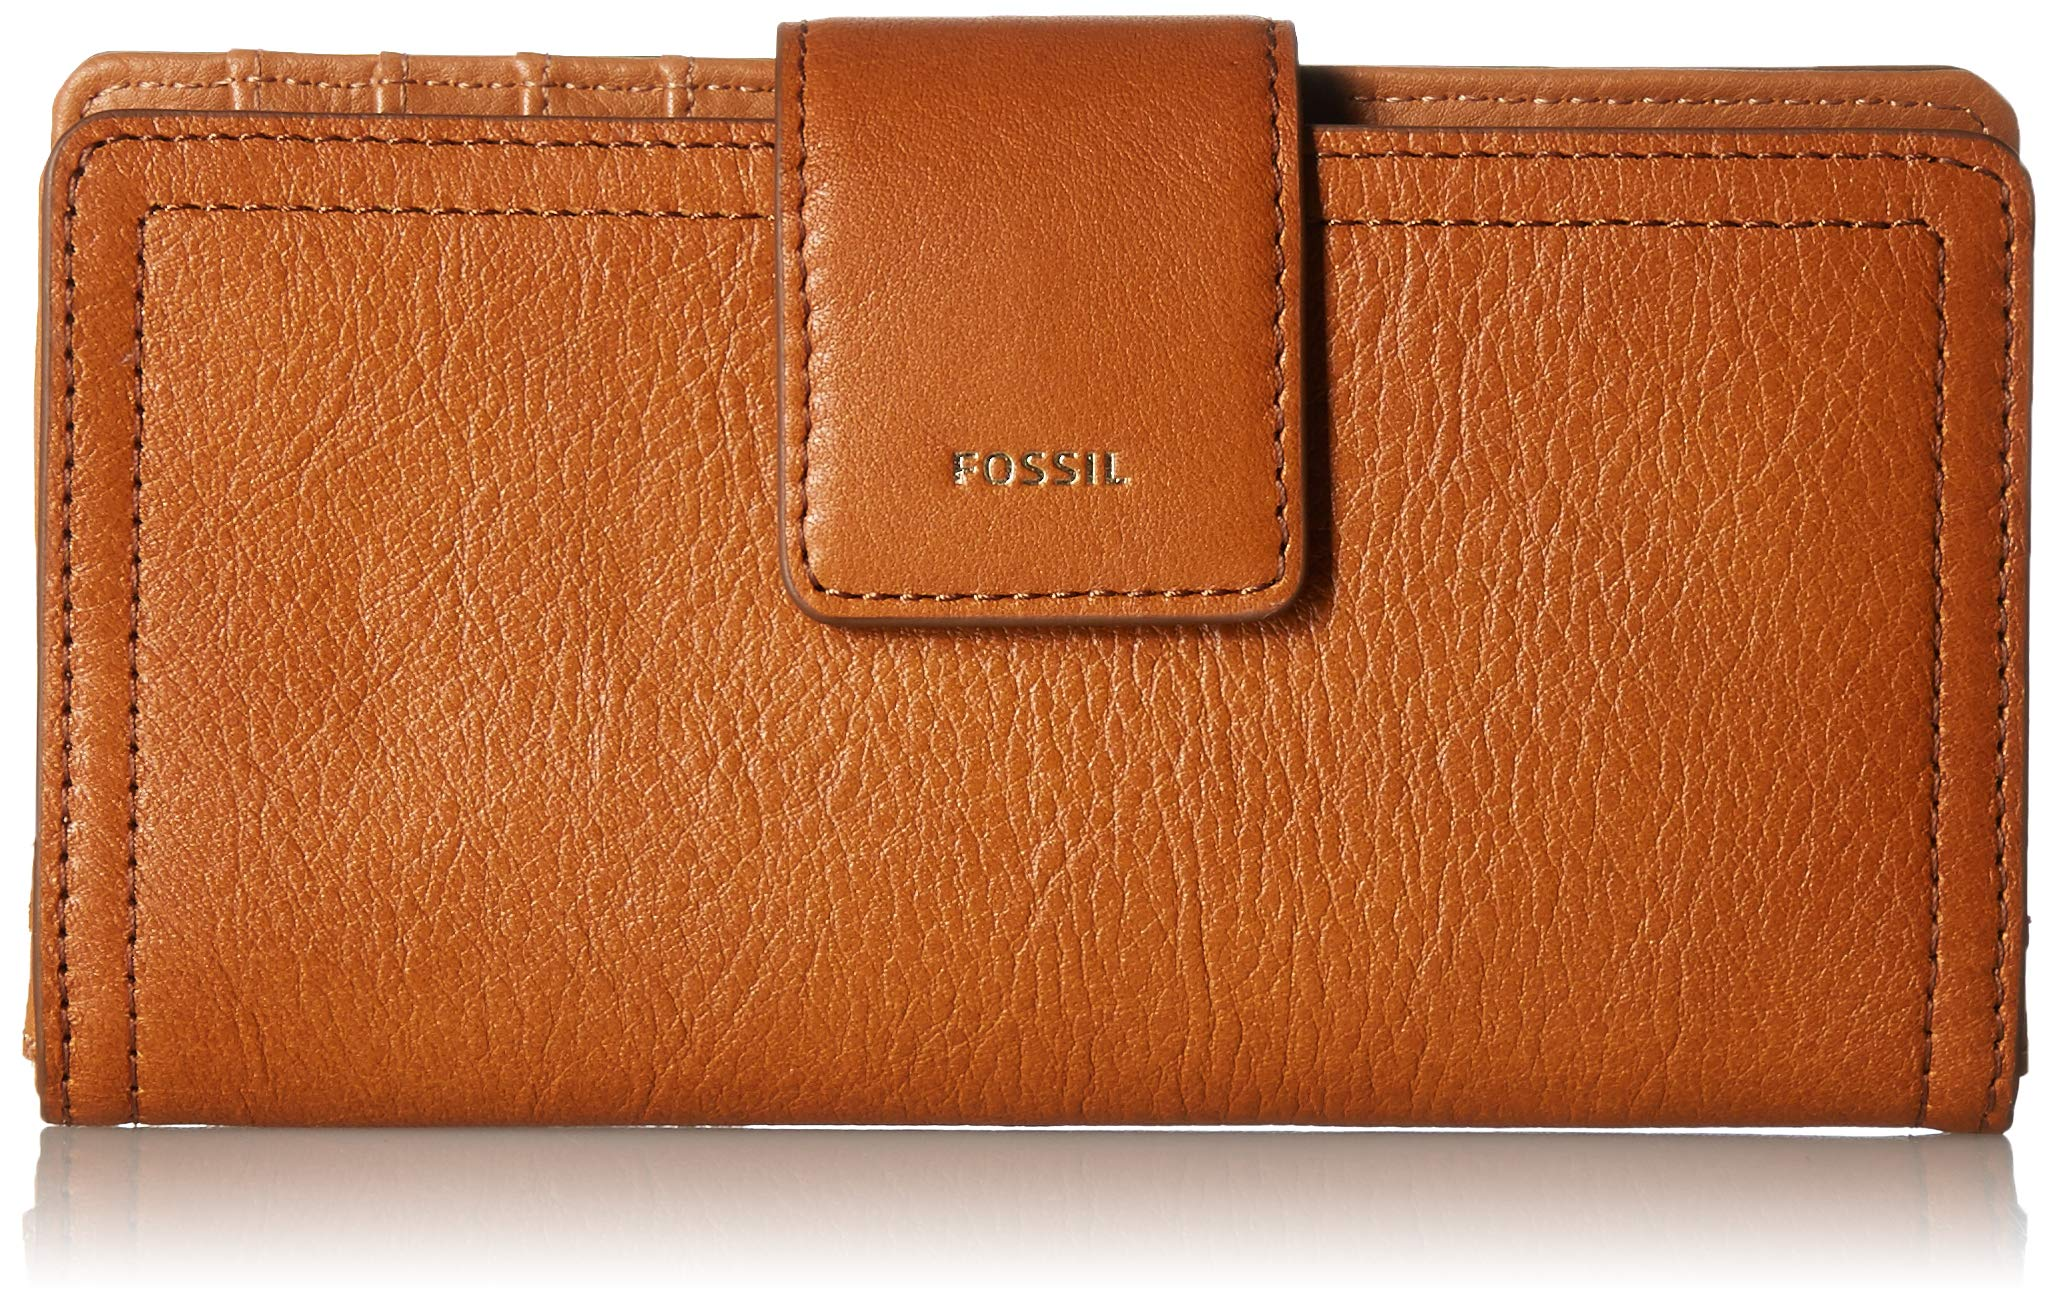 Fossil Logan RFID Tab Wallet, Tan by Fossil